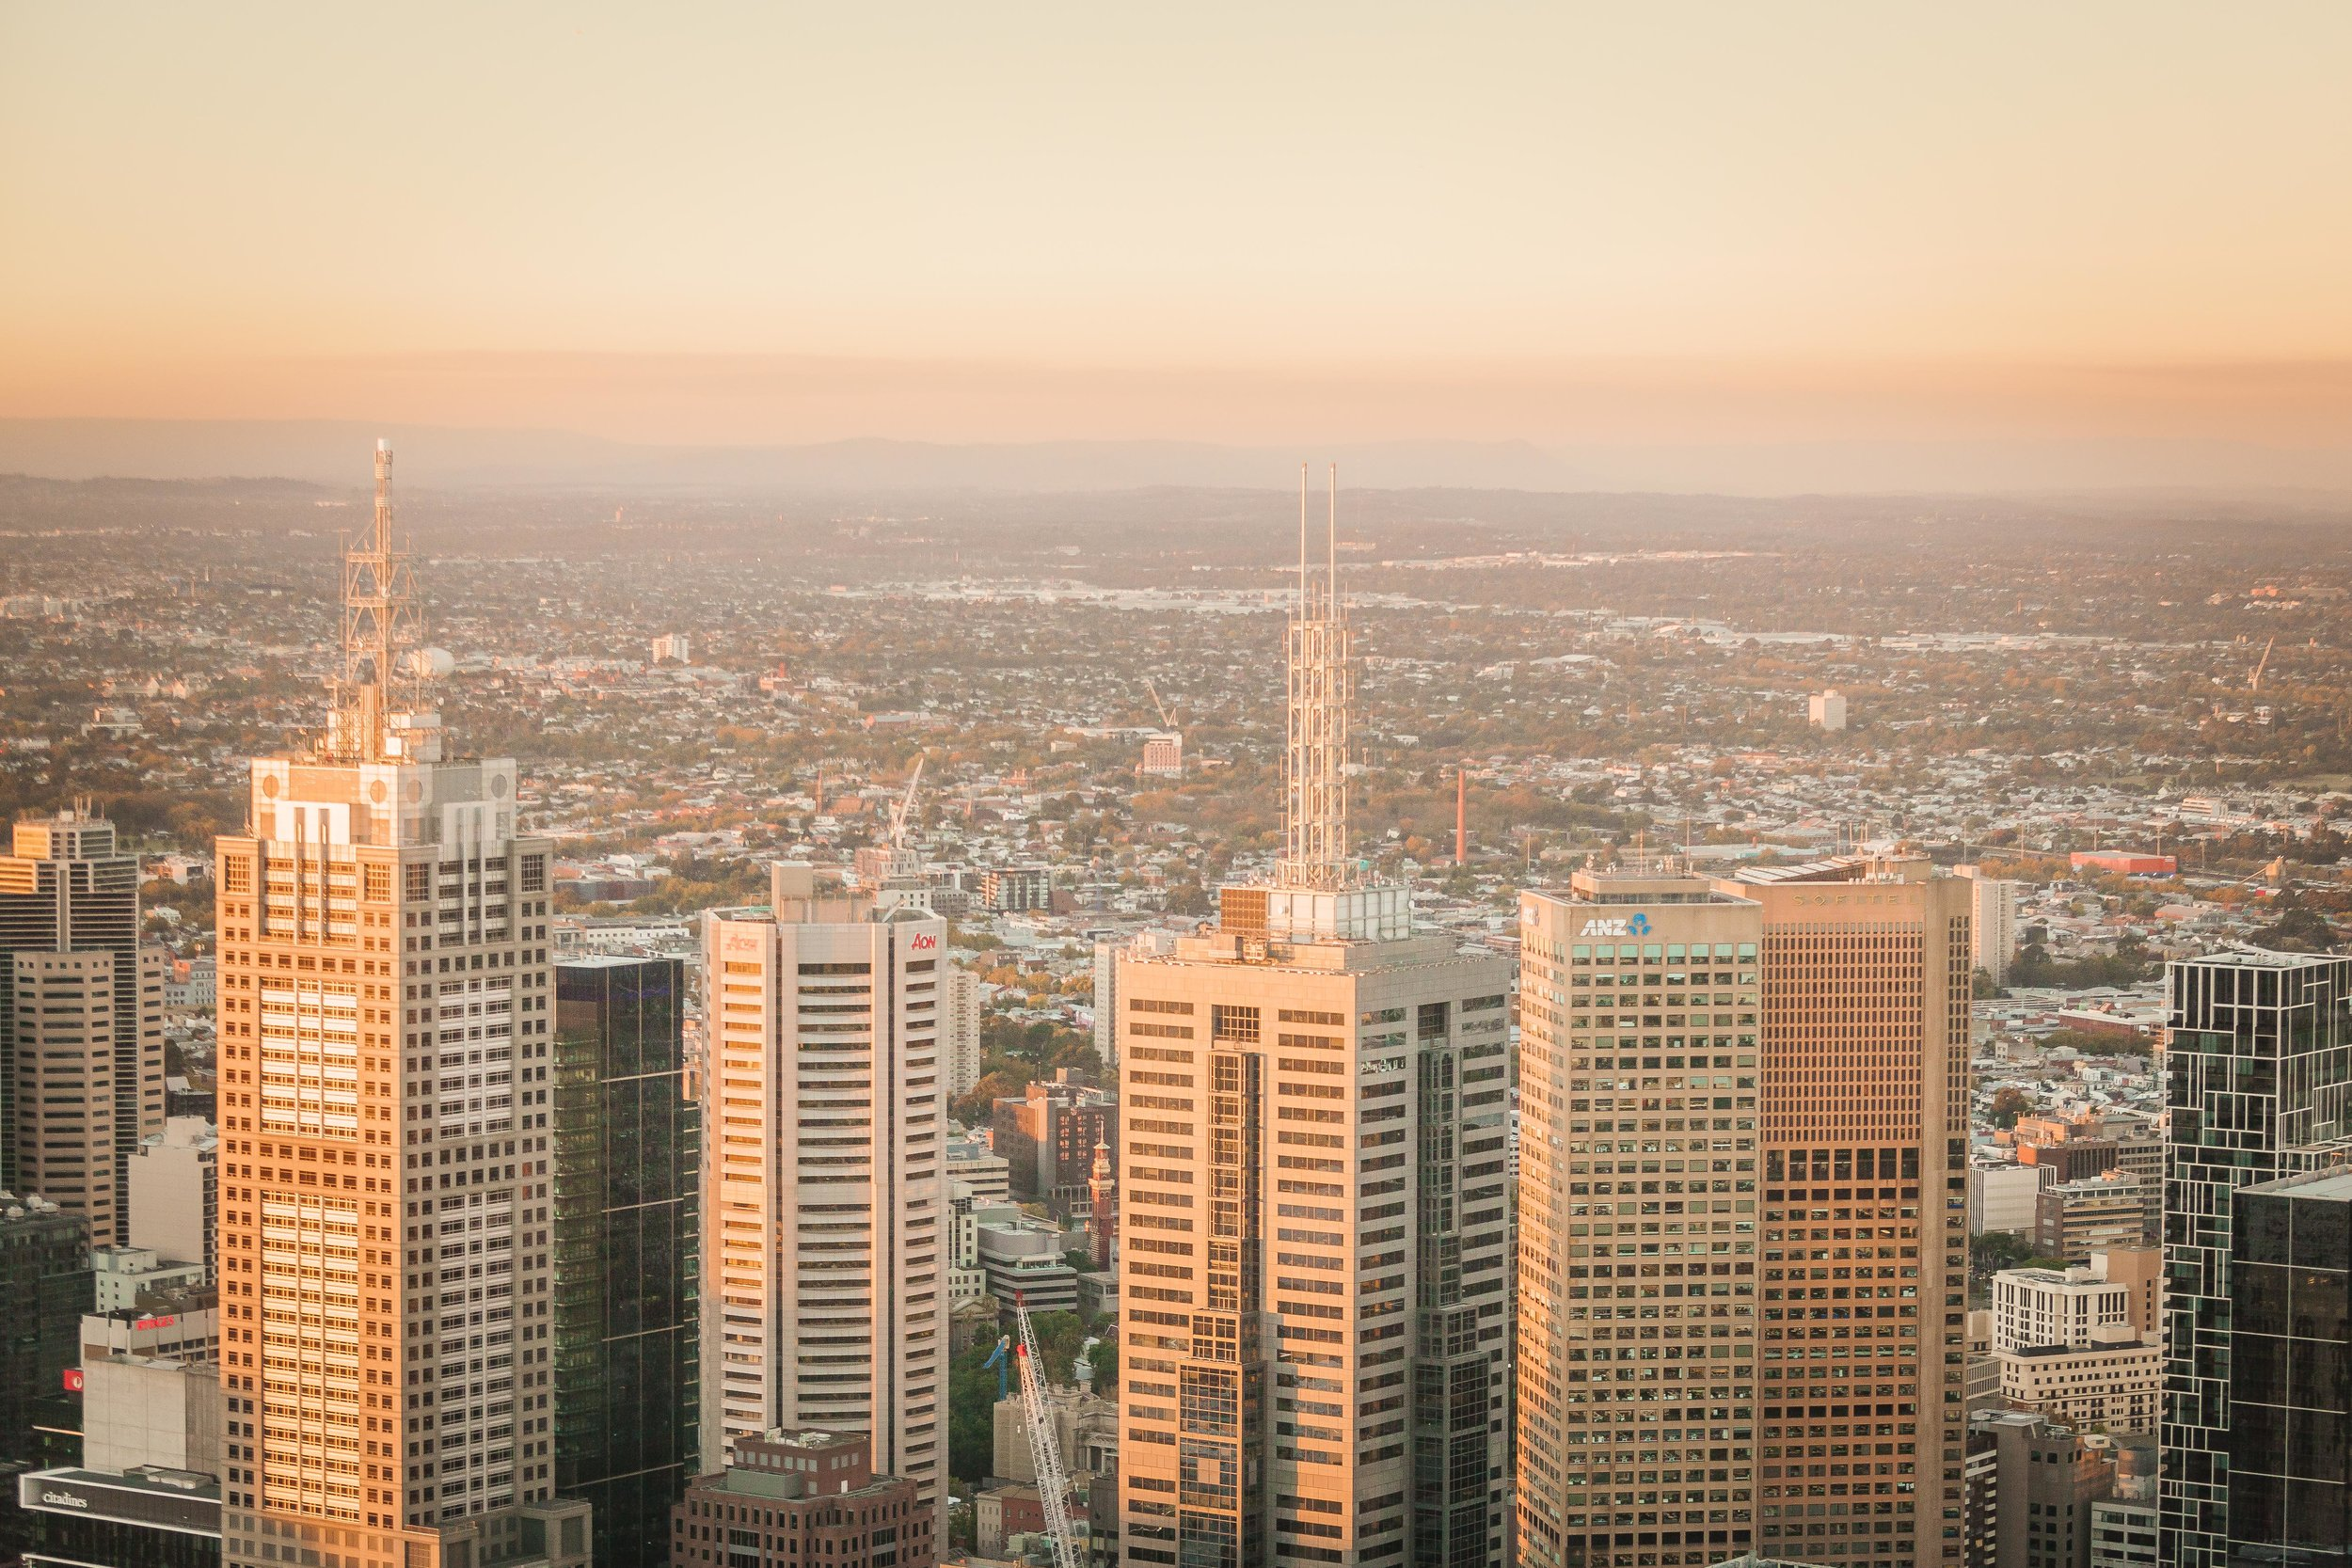 Melbourne Urban City-5565.jpg